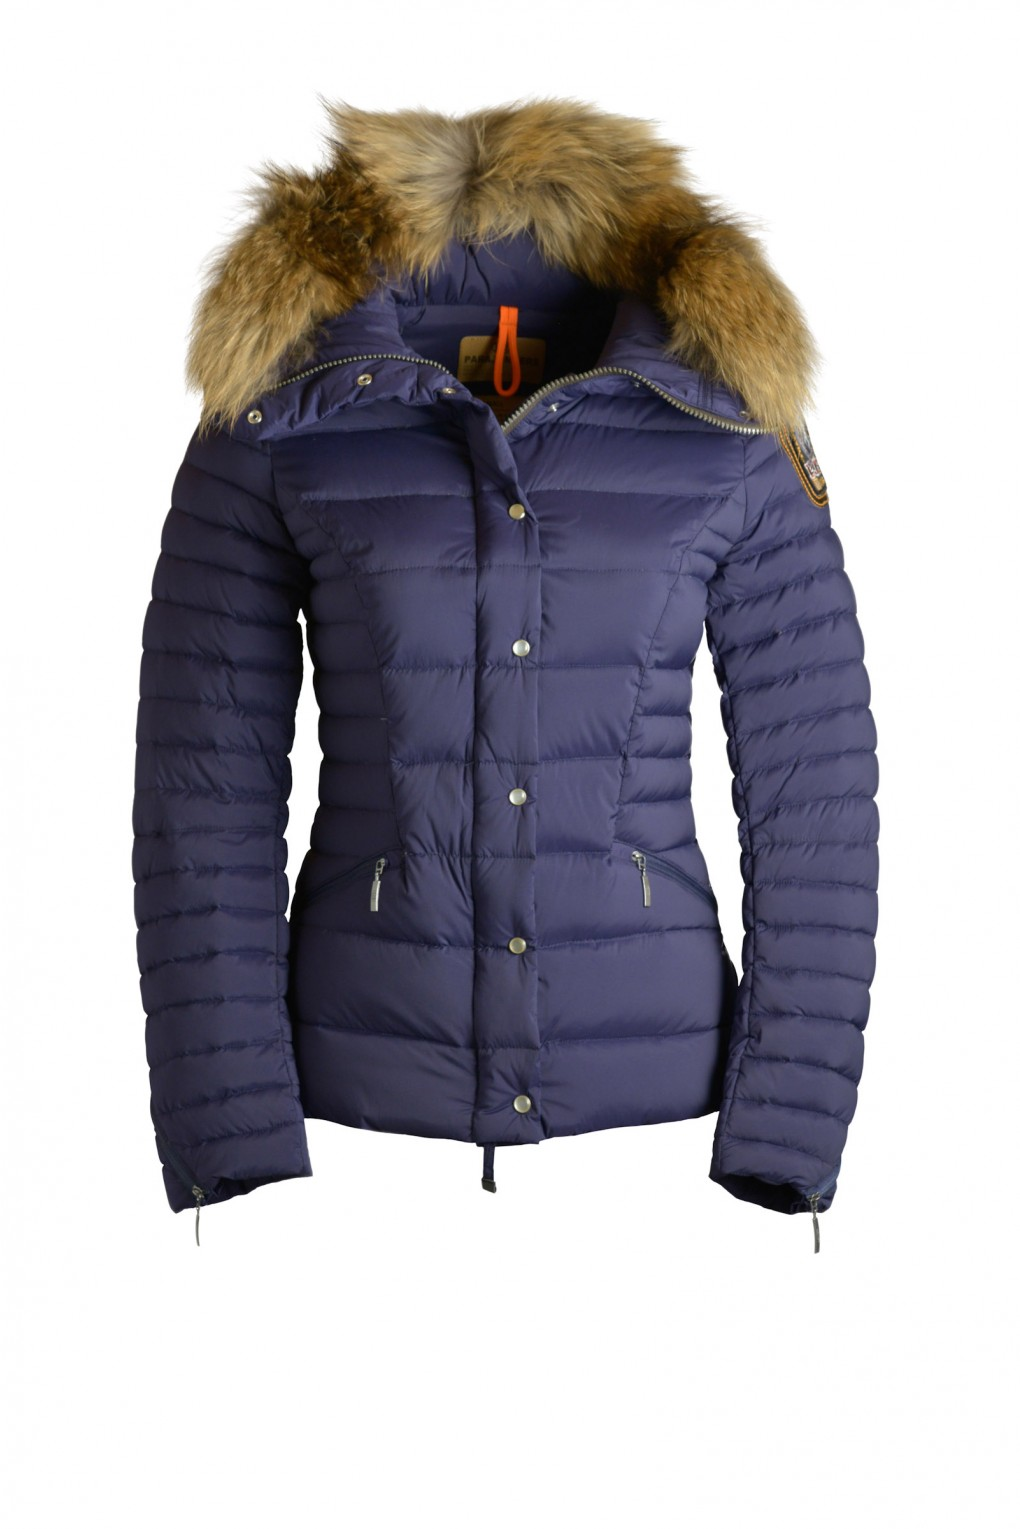 parajumpers MARLENE woman outerwear Prussian Blue